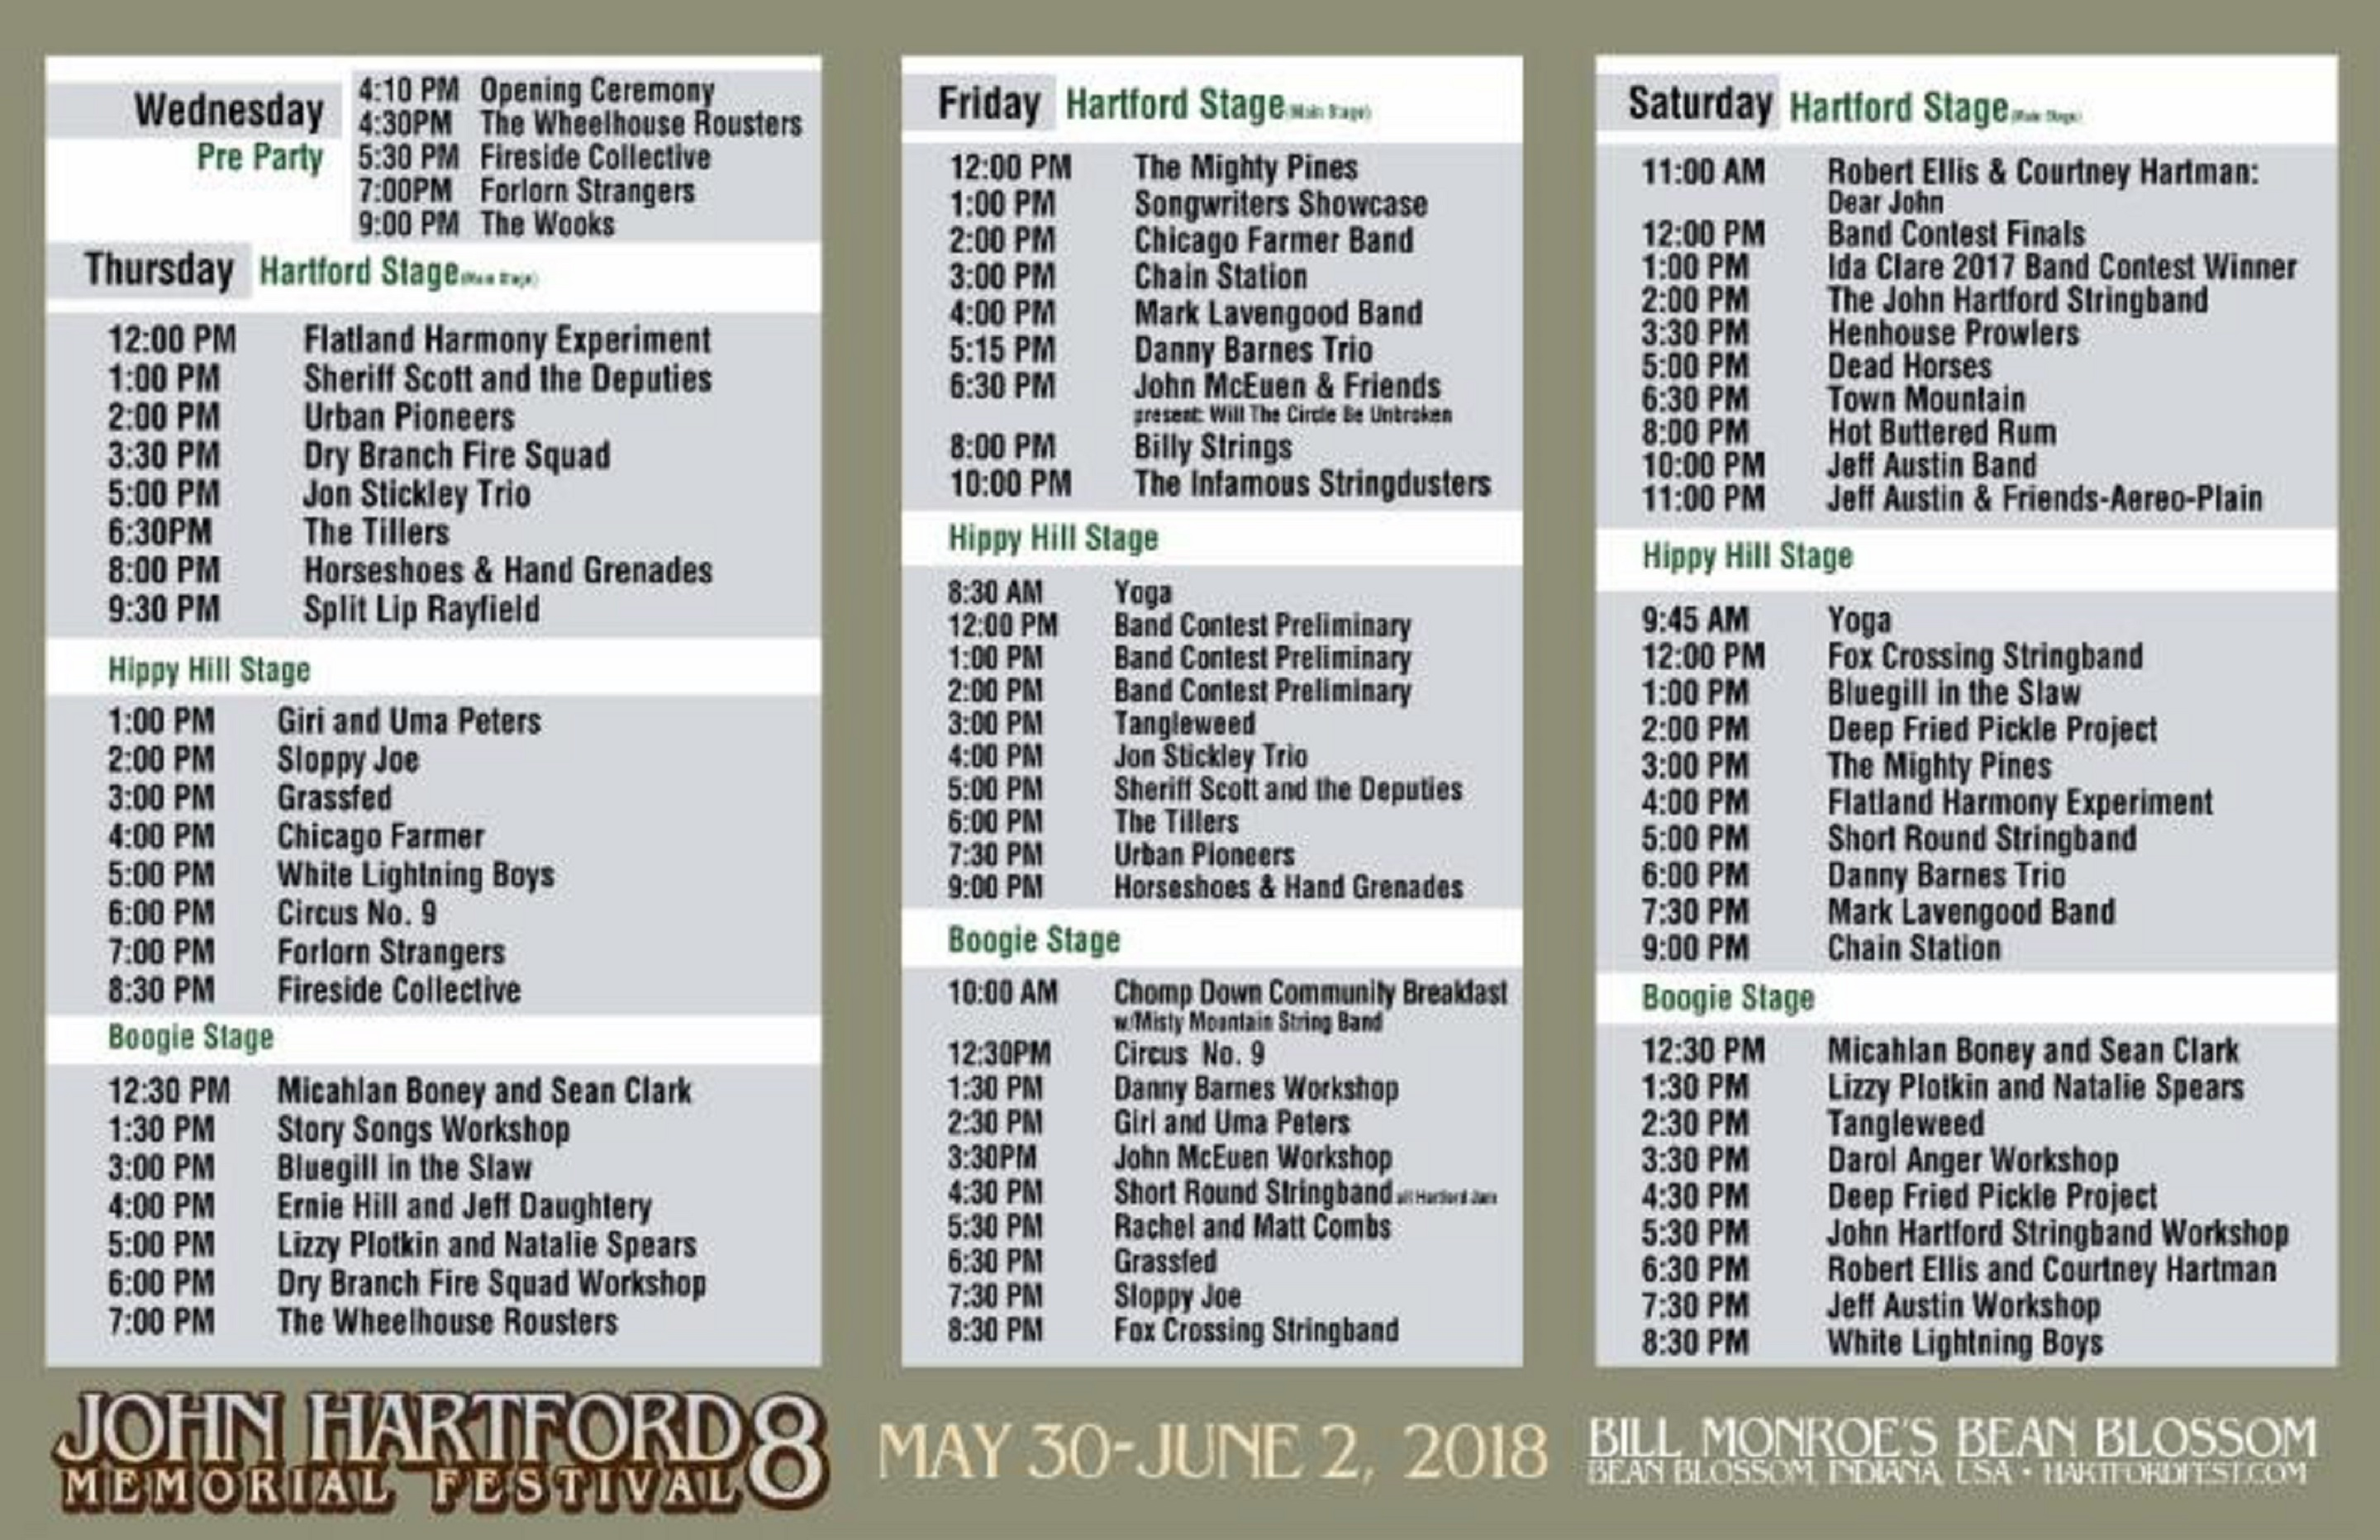 John Hartford Memorial Festival Announces Stage Schedule